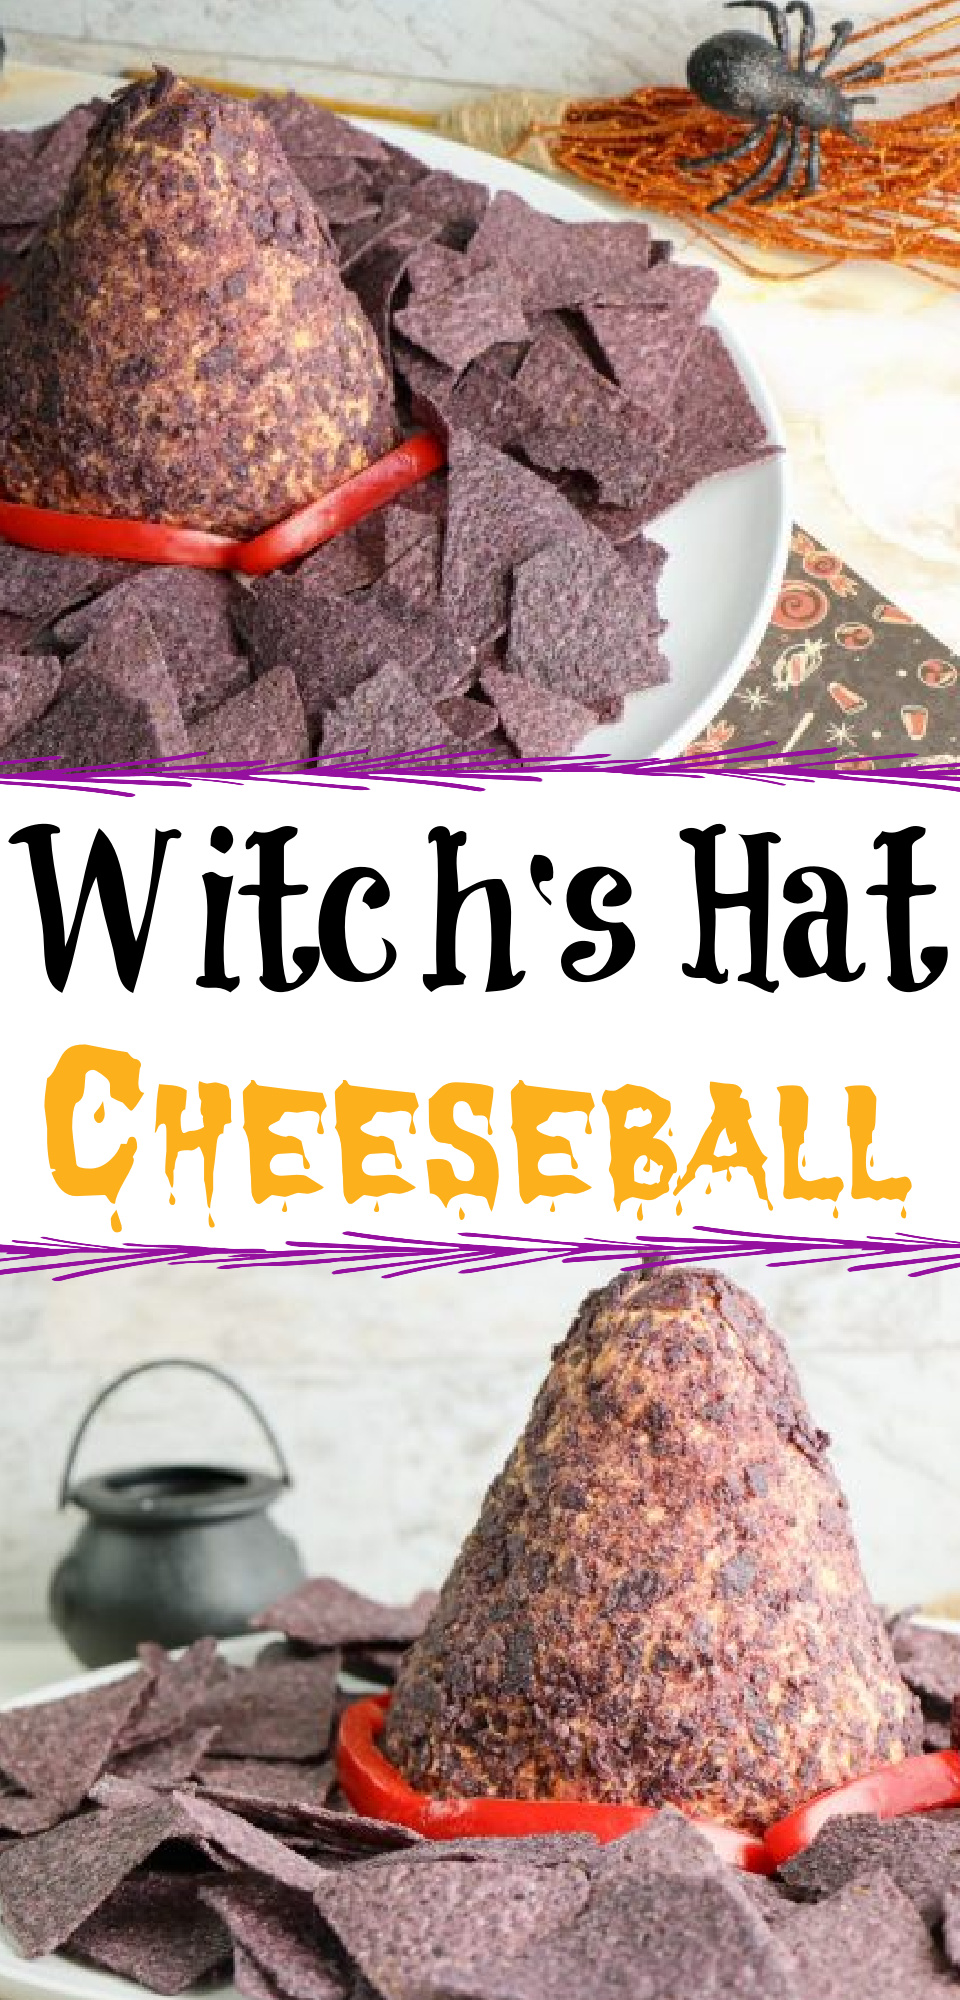 This is such a fun Halloween food idea that is great for the whole family! This homemade cheese ball in the shape of a witch hat will be the talk of your Halloween party! This Halloween cheese ball is so easy and delicious too! via @simplysidedishes89